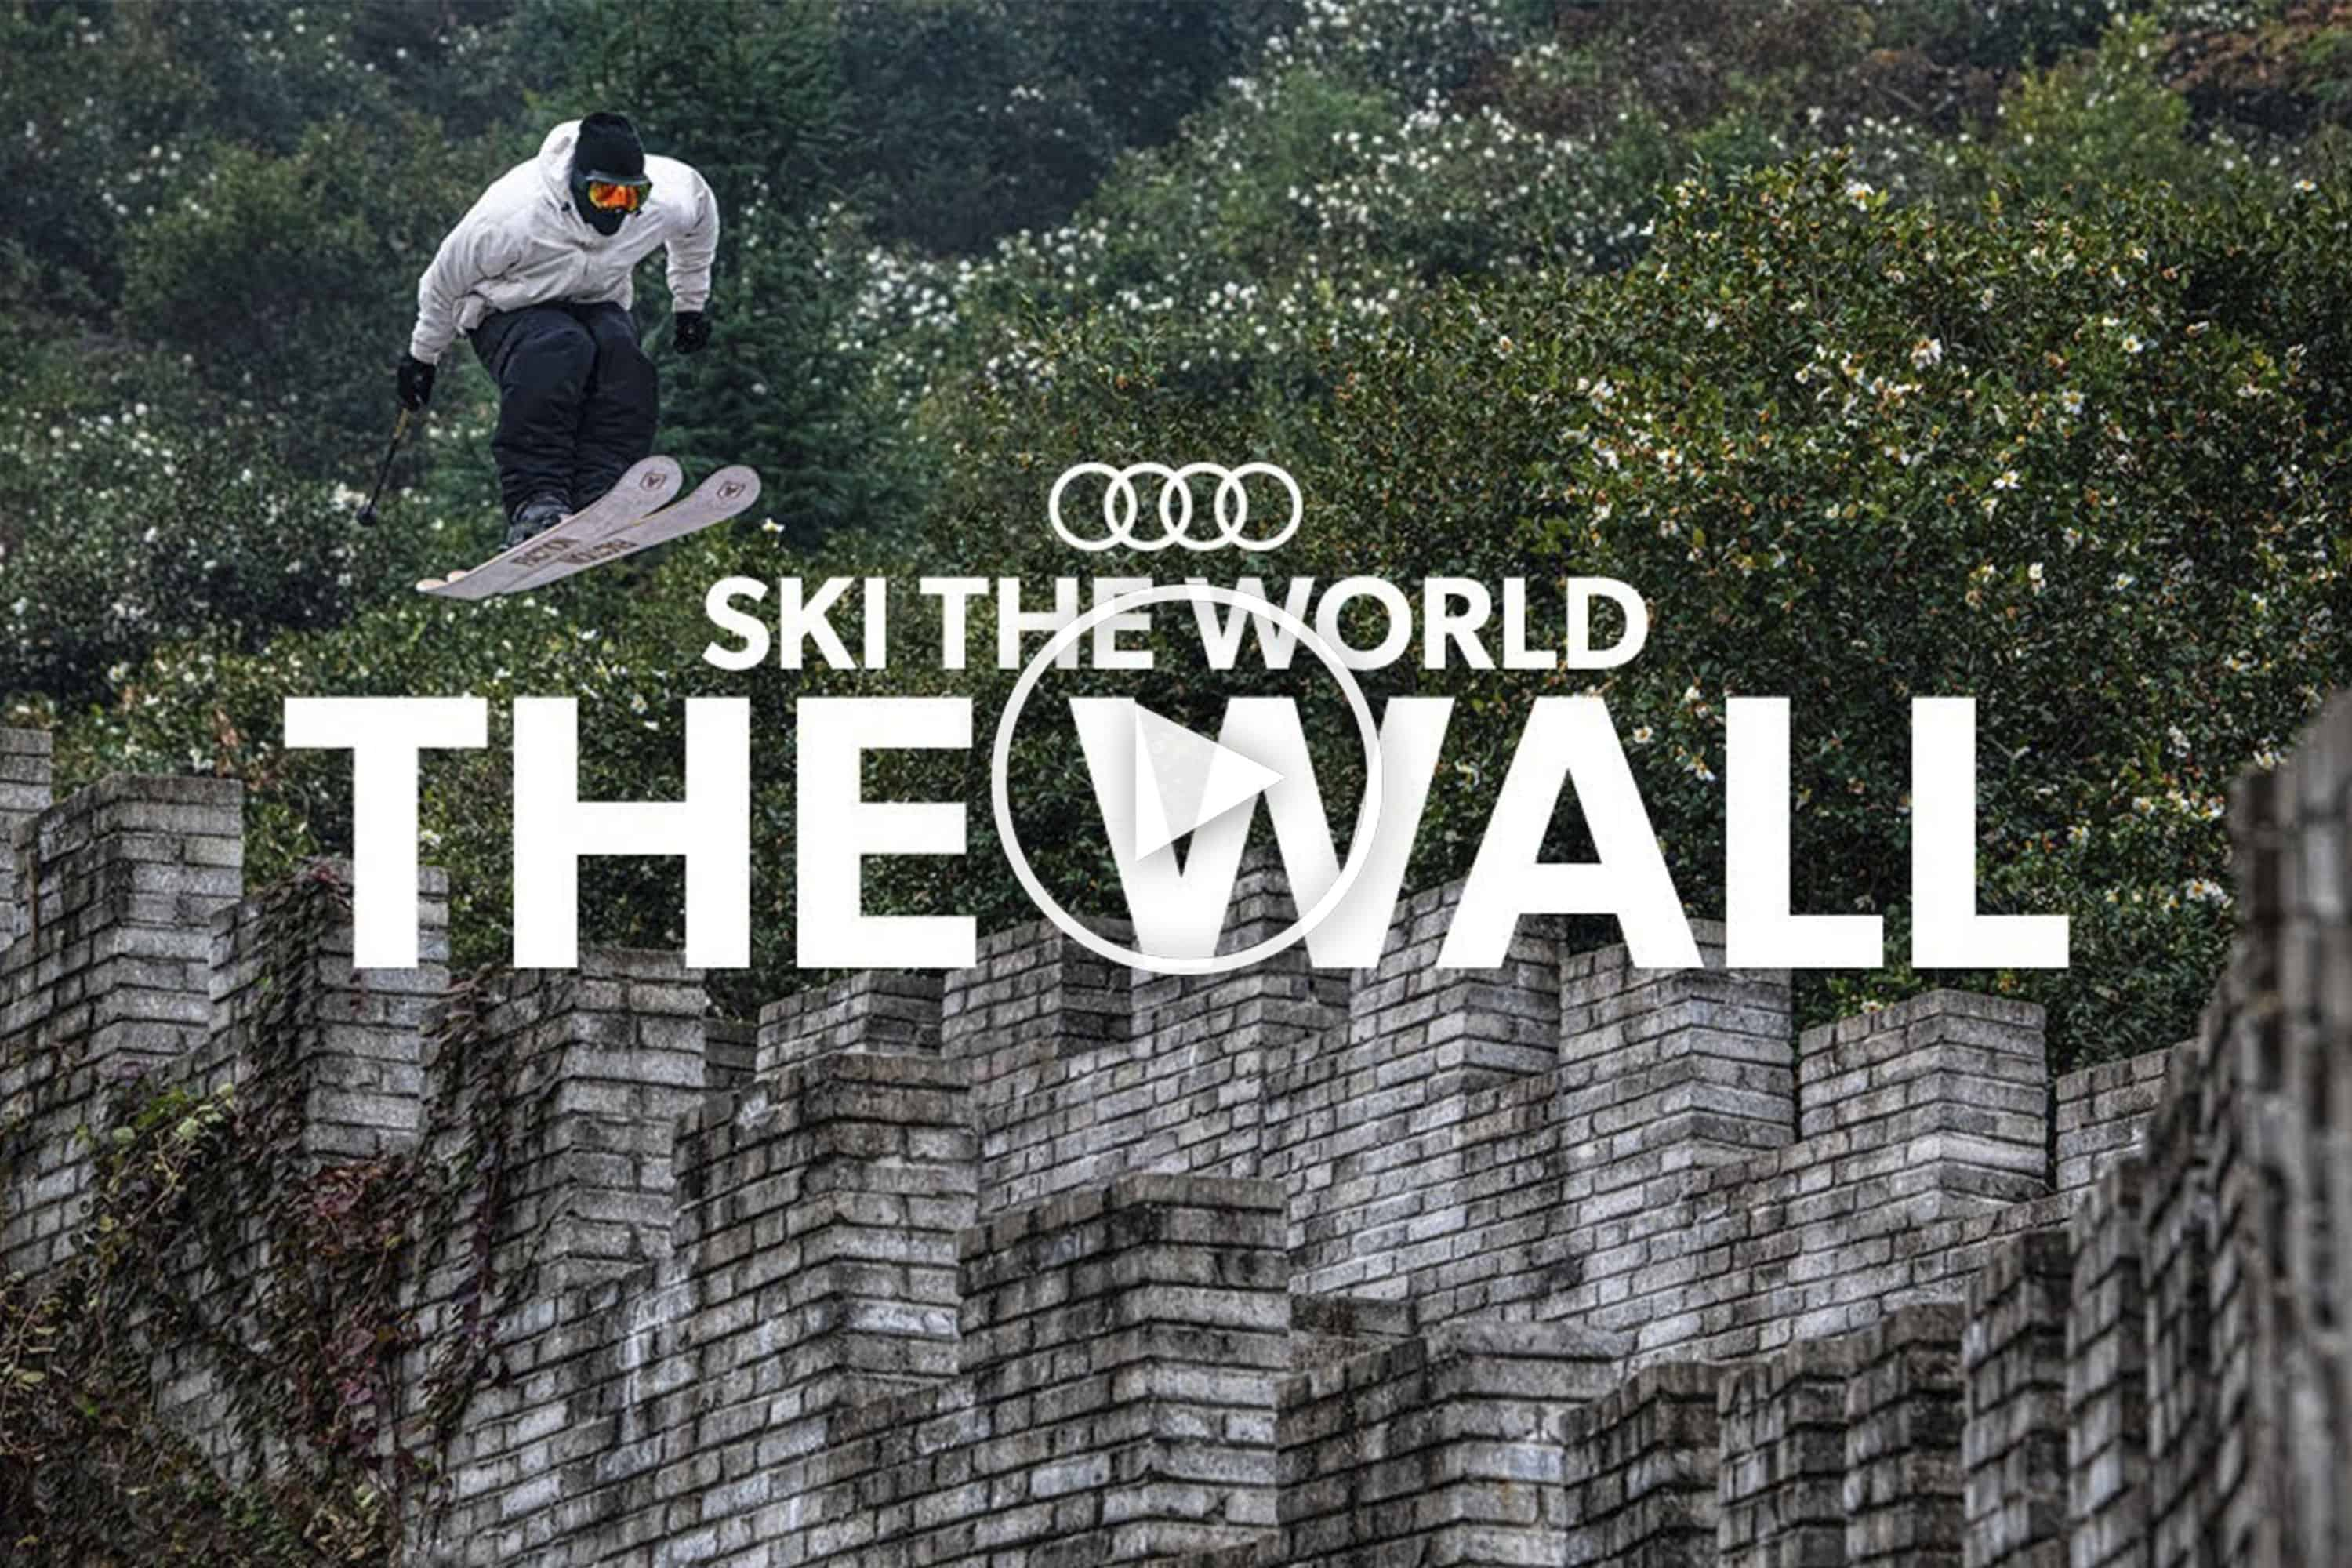 Candide Thovex Ski The World - Behind the Scenes, The Great Wall of China